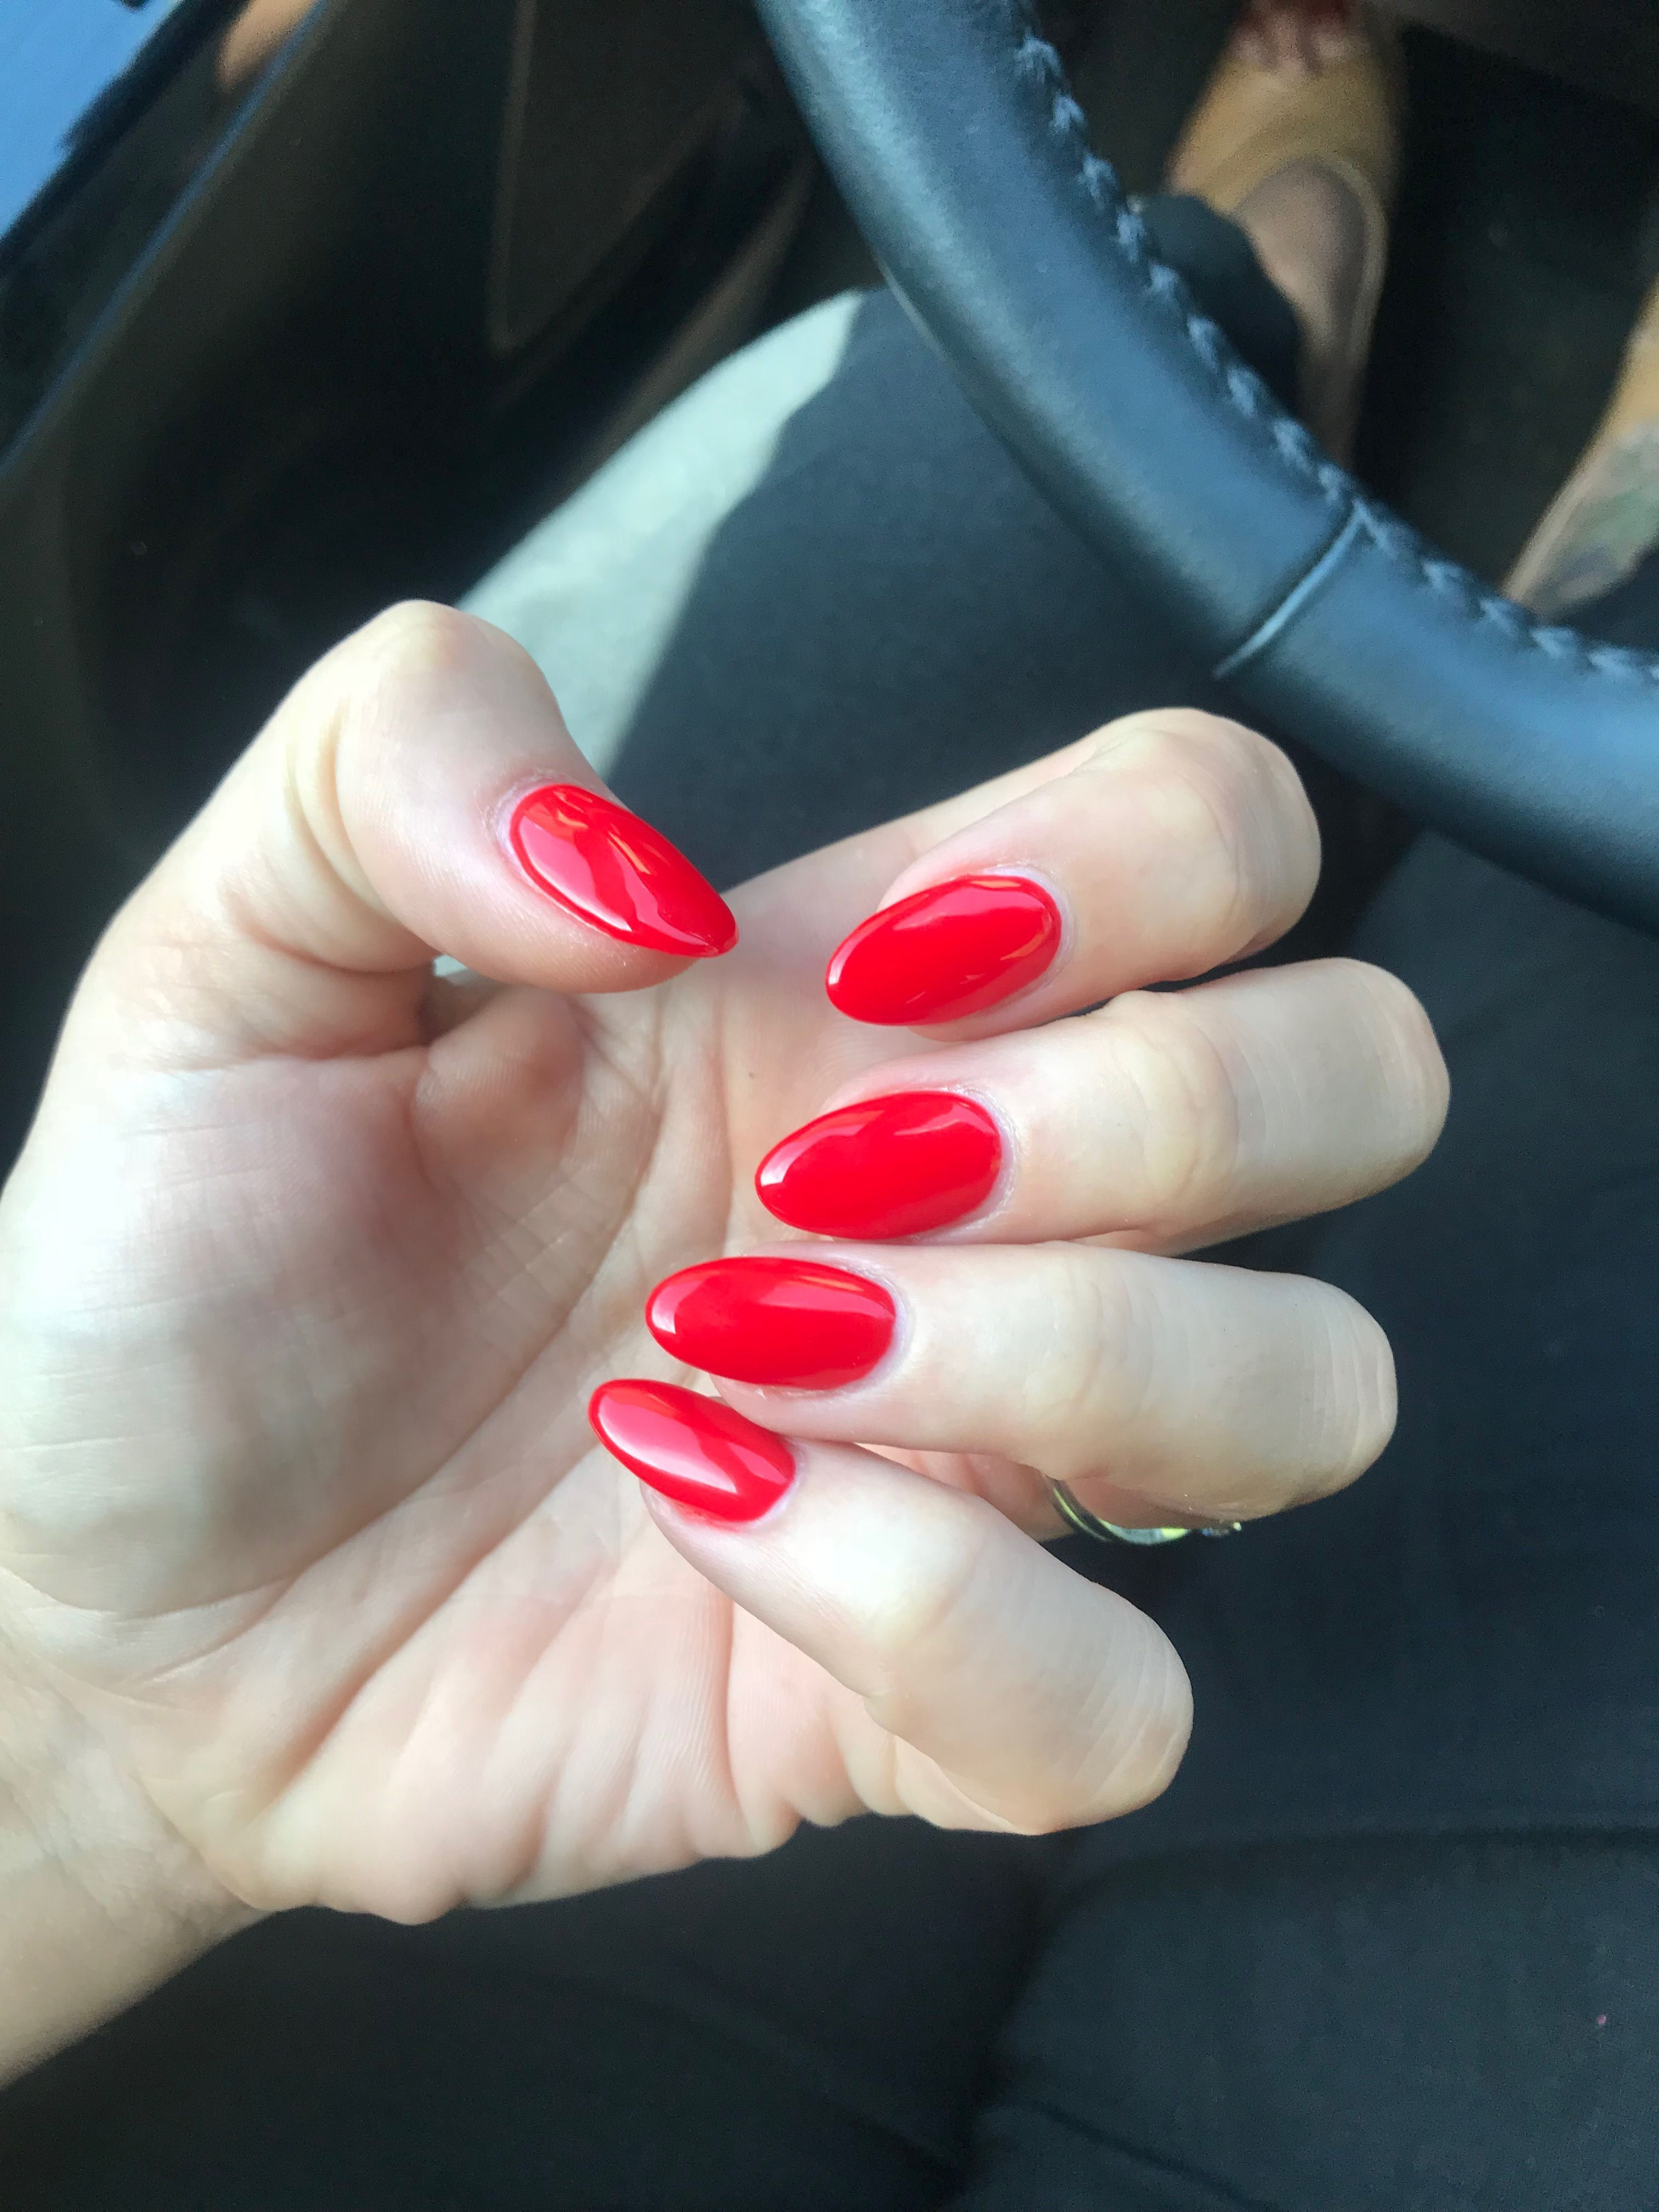 Ferrari Red Almond Round Acrylic Bright Red Short Nails Red Acrylic Nails Rounded Acrylic Nails Bright Red Nails